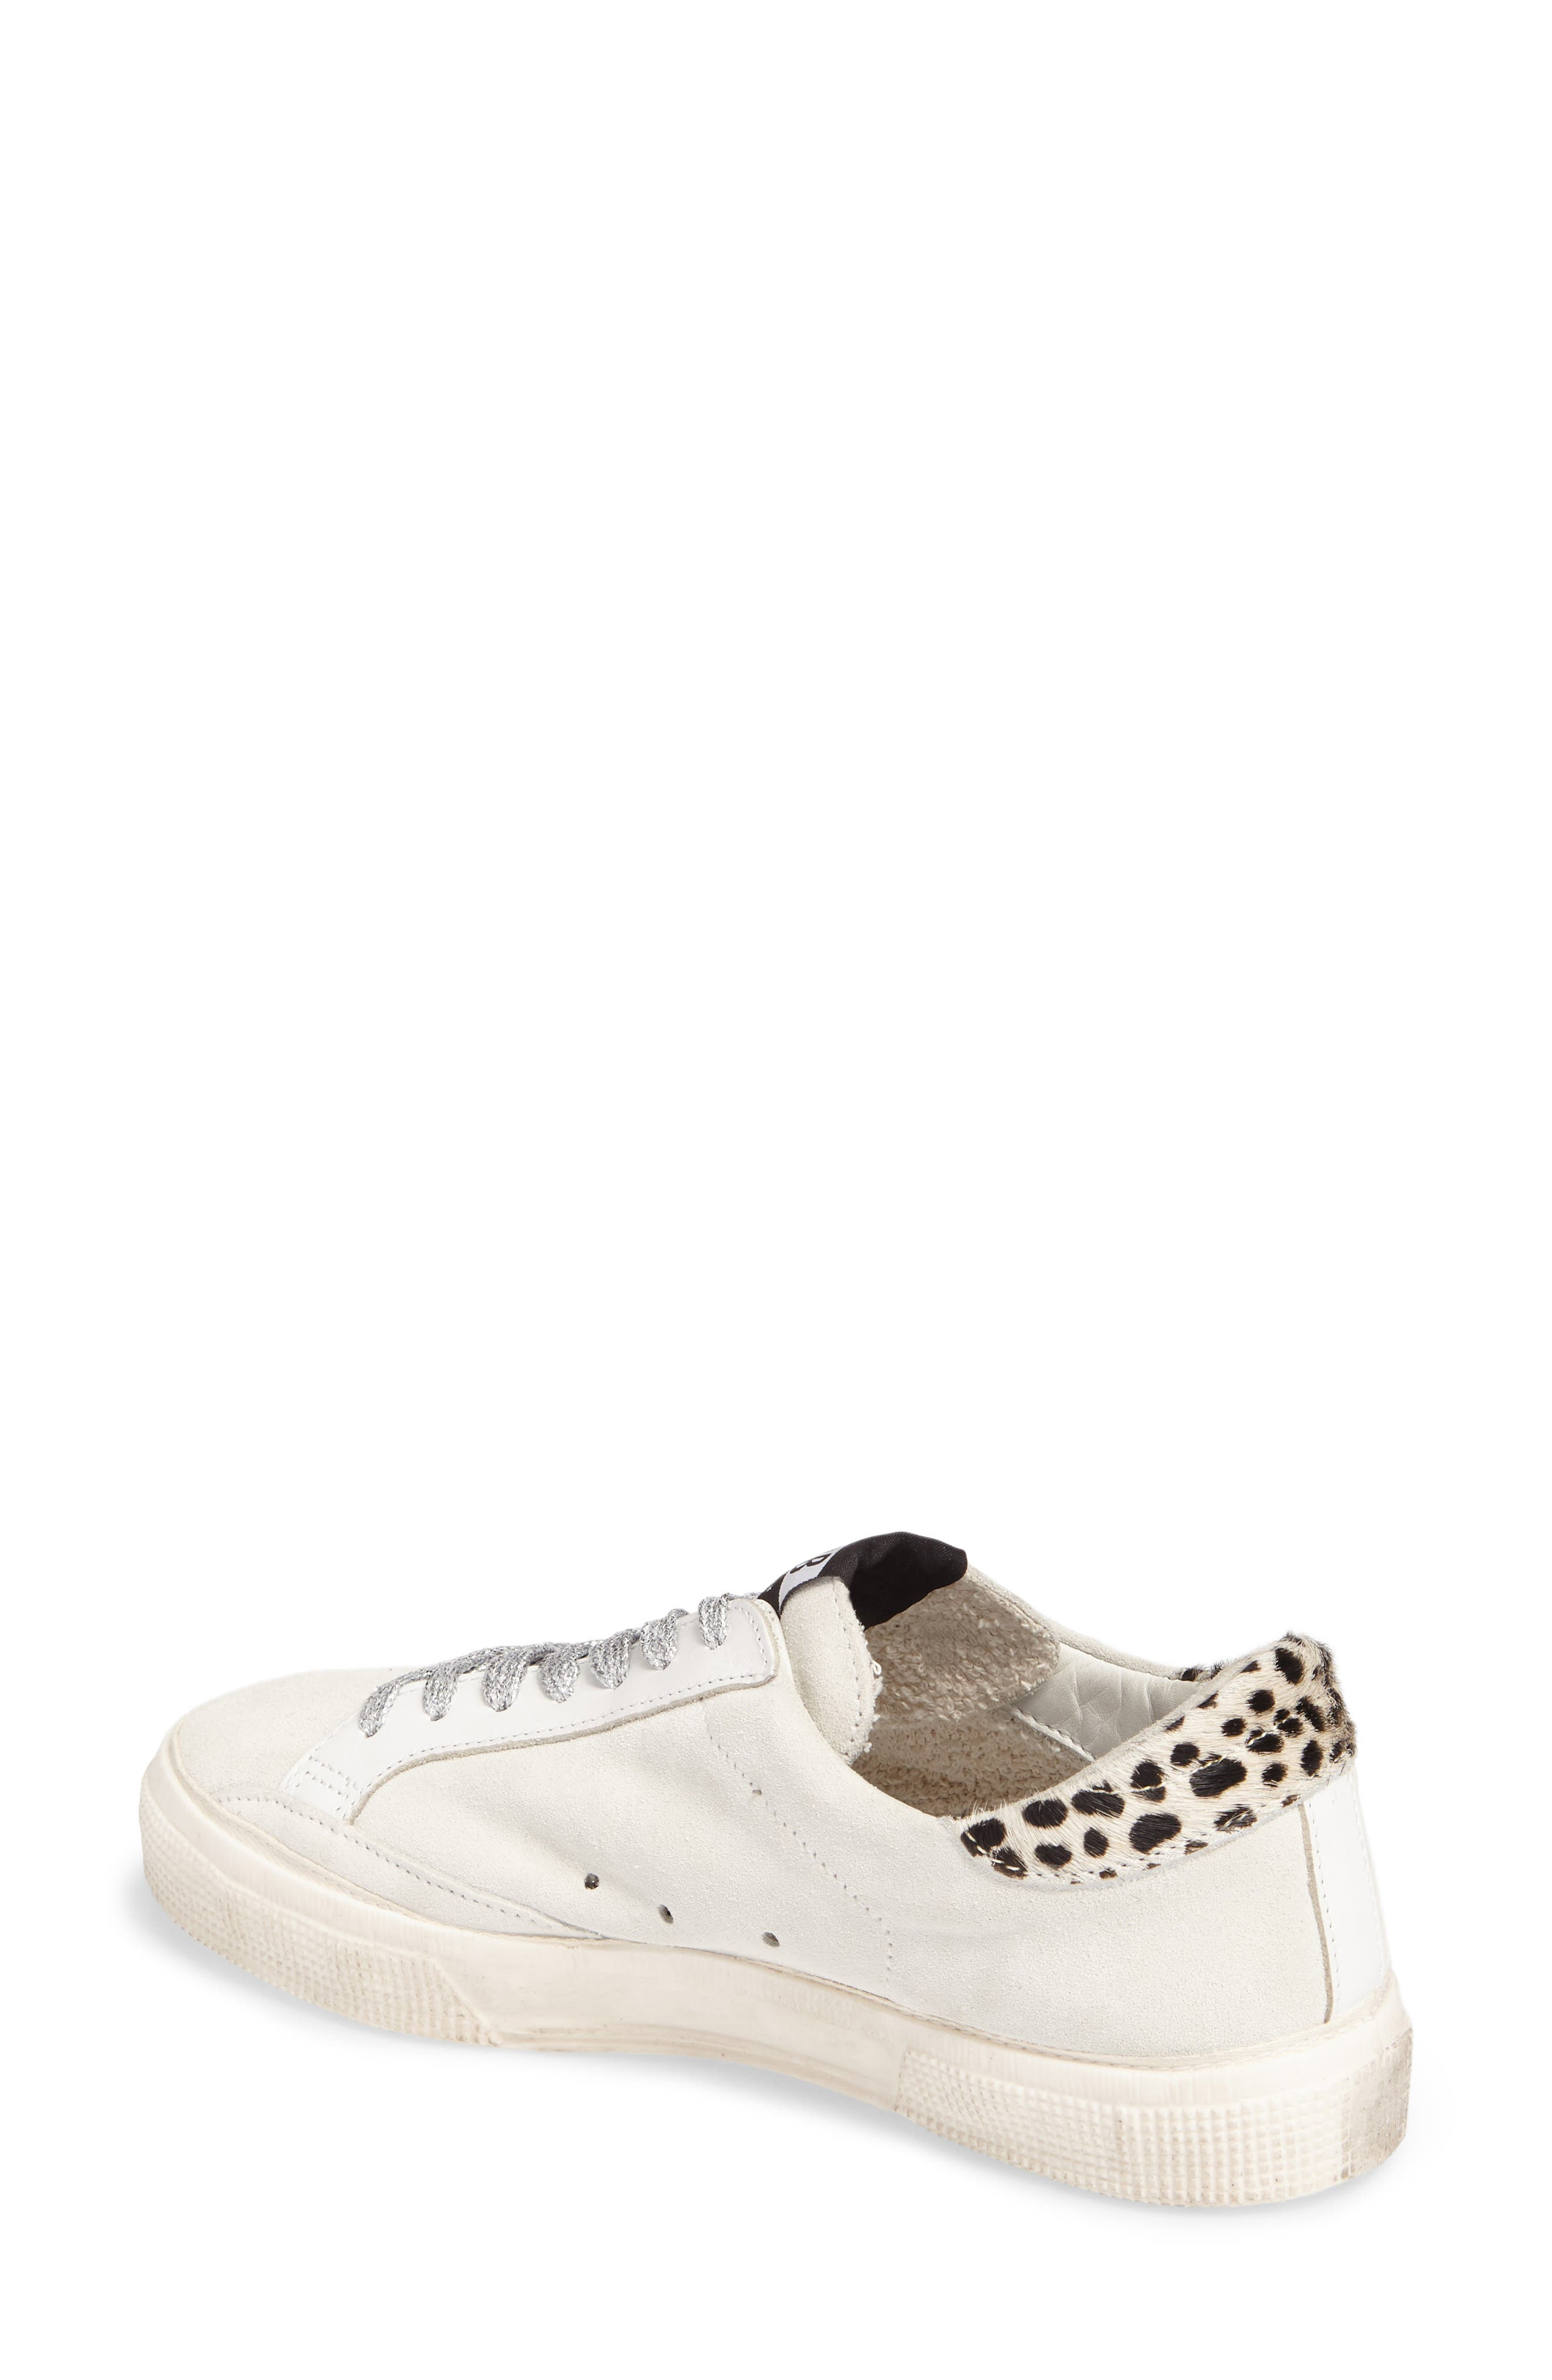 May Low Top Sneaker,                             Alternate thumbnail 2, color,                             White Suede/ Leopard